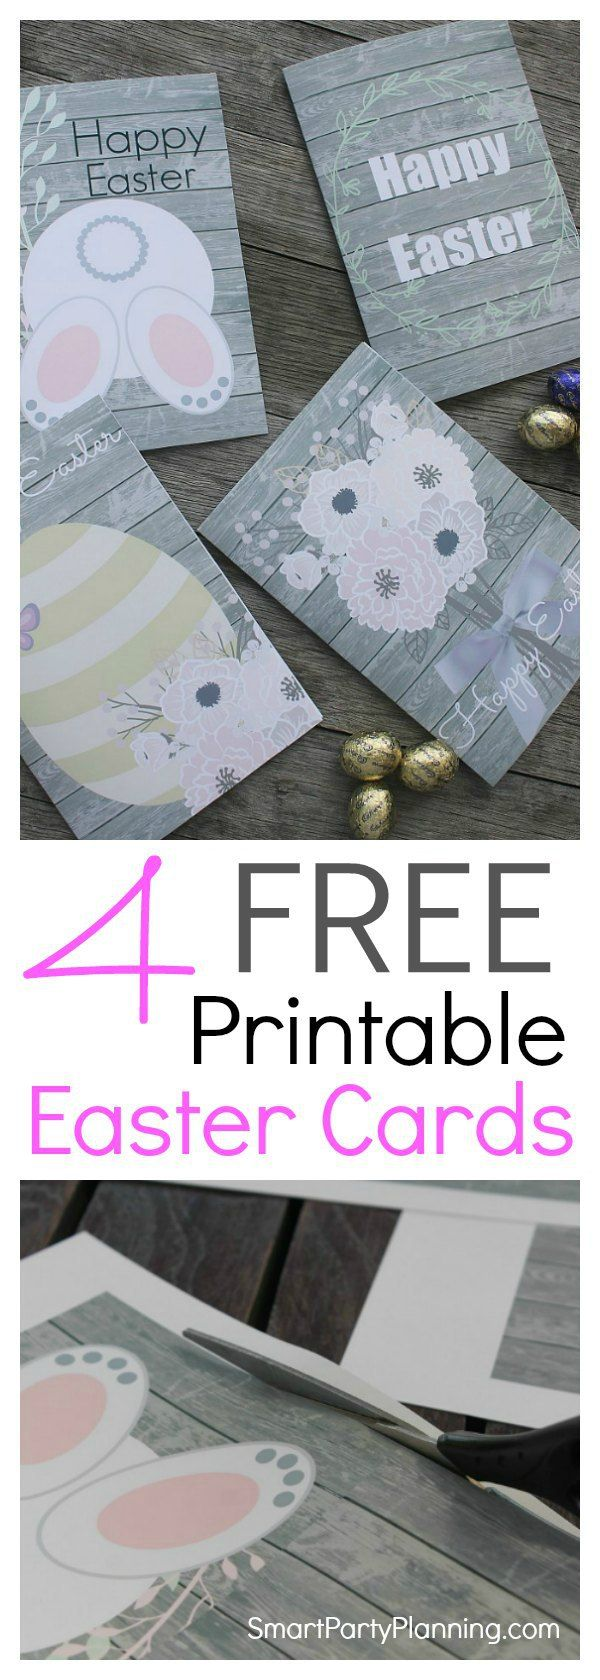 DIY free printable Easter cards complete with bunnies, eggs and flowers.. Send a beautiful Easter card to someone you love this year. Download and print it for free. With 4 super cute fun designs to choose from, the cards will be sure to delight. Simply print, cut fold and send. It couldn't be easier. #Eastercards #Freeprintable #Bunnies